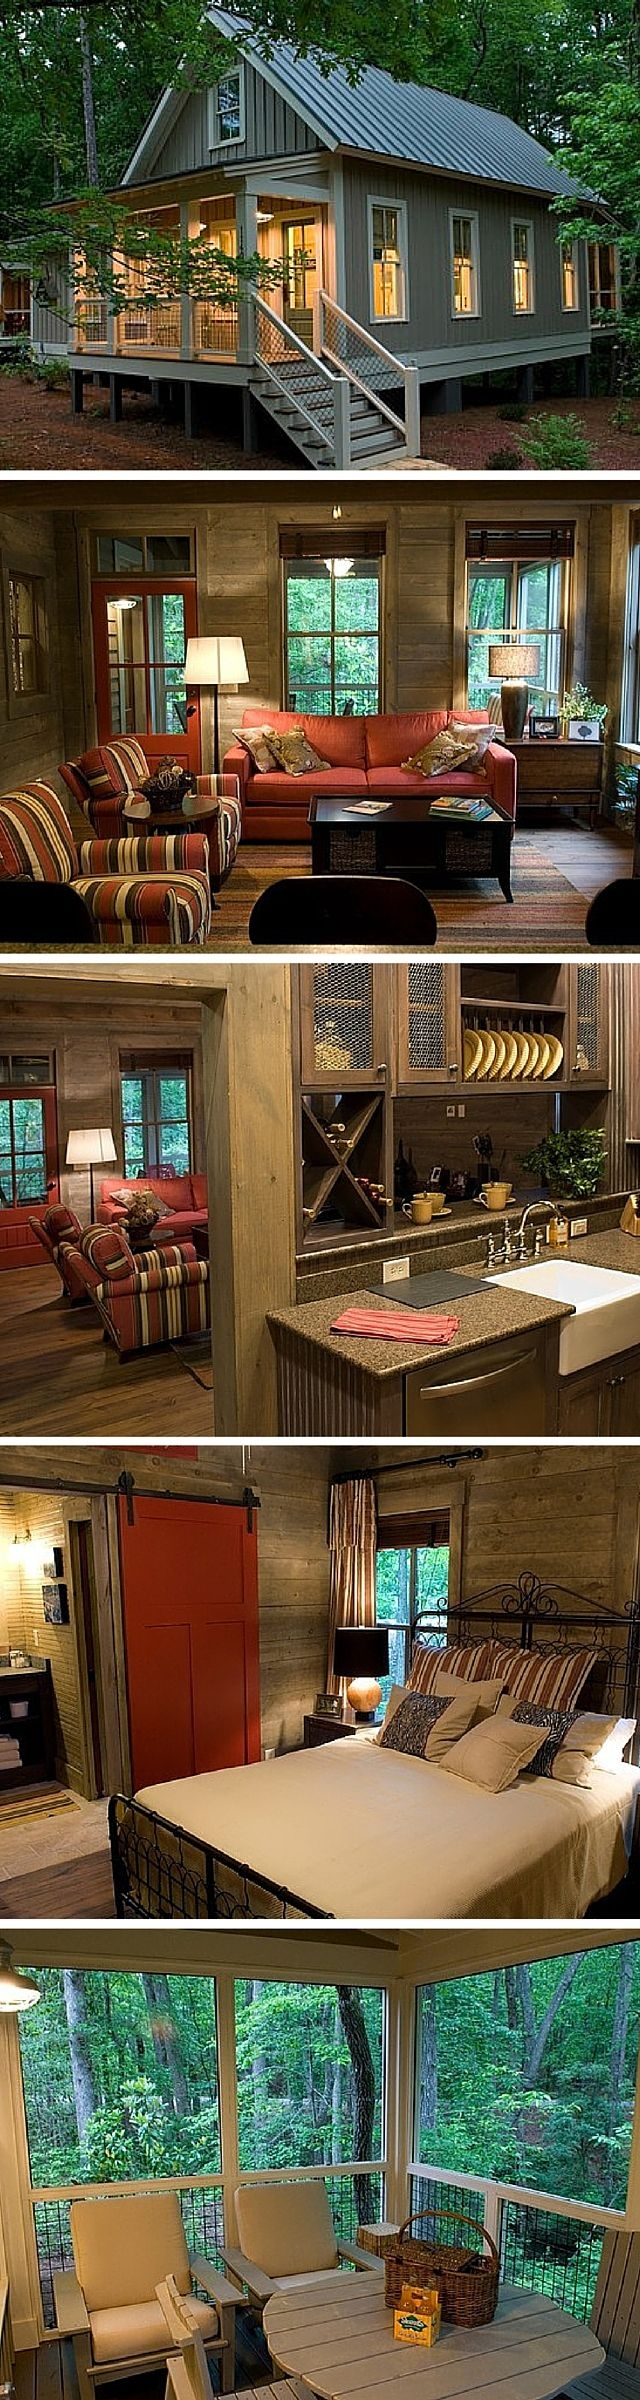 60 Small Mountain Cabin Plans with Loft Inspirational Camp Calloway My Mountain Home